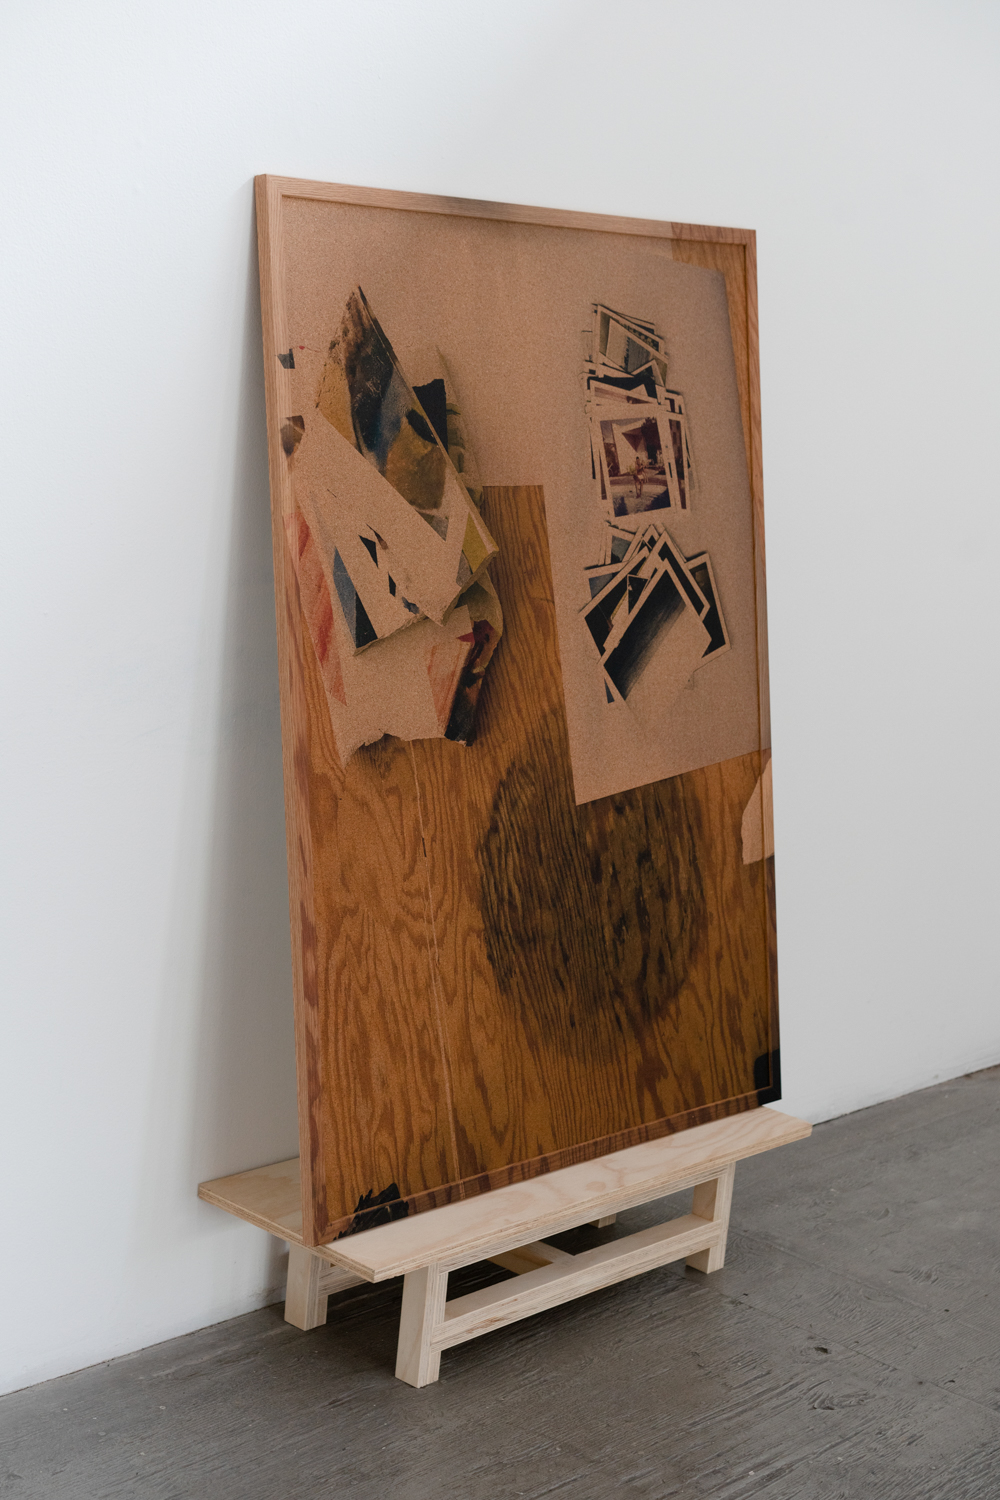 Bottoms Up , 2019, acrylic on framed cork board, wood, 55.5 x 24 x 10.5 inches